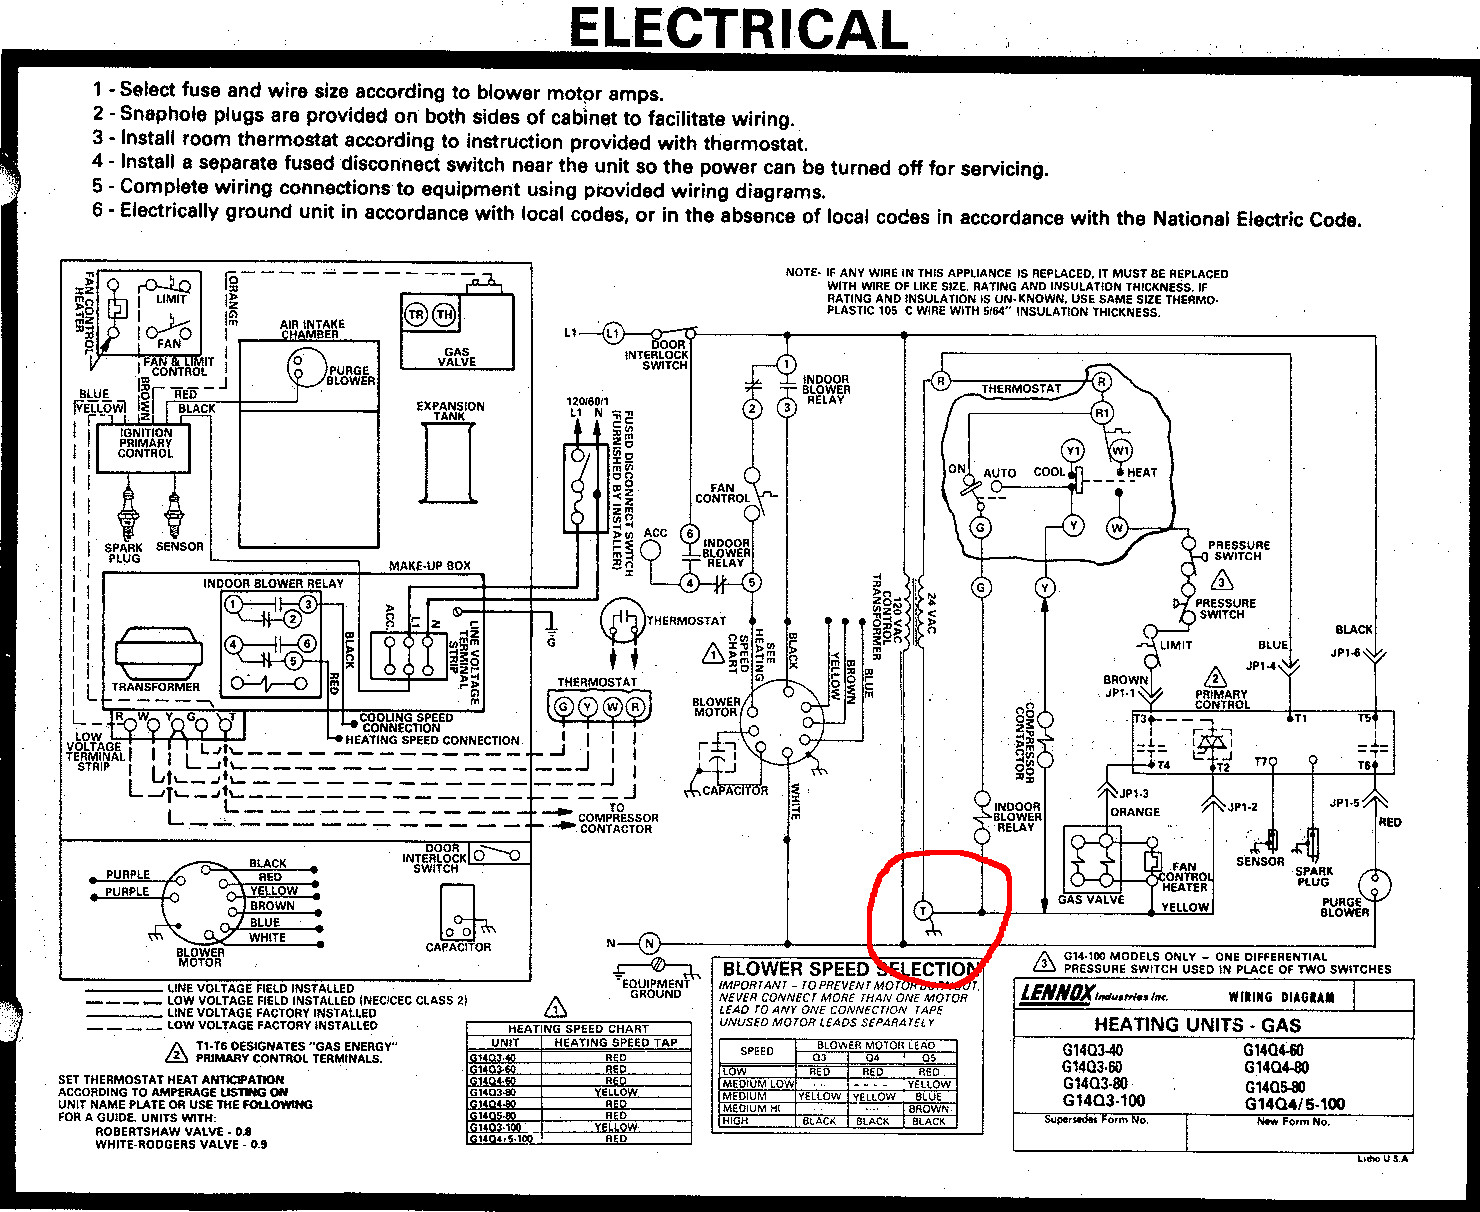 old rheem air handler wiring diagram 2001 dodge ram infinity lennox furnace thermostat collection